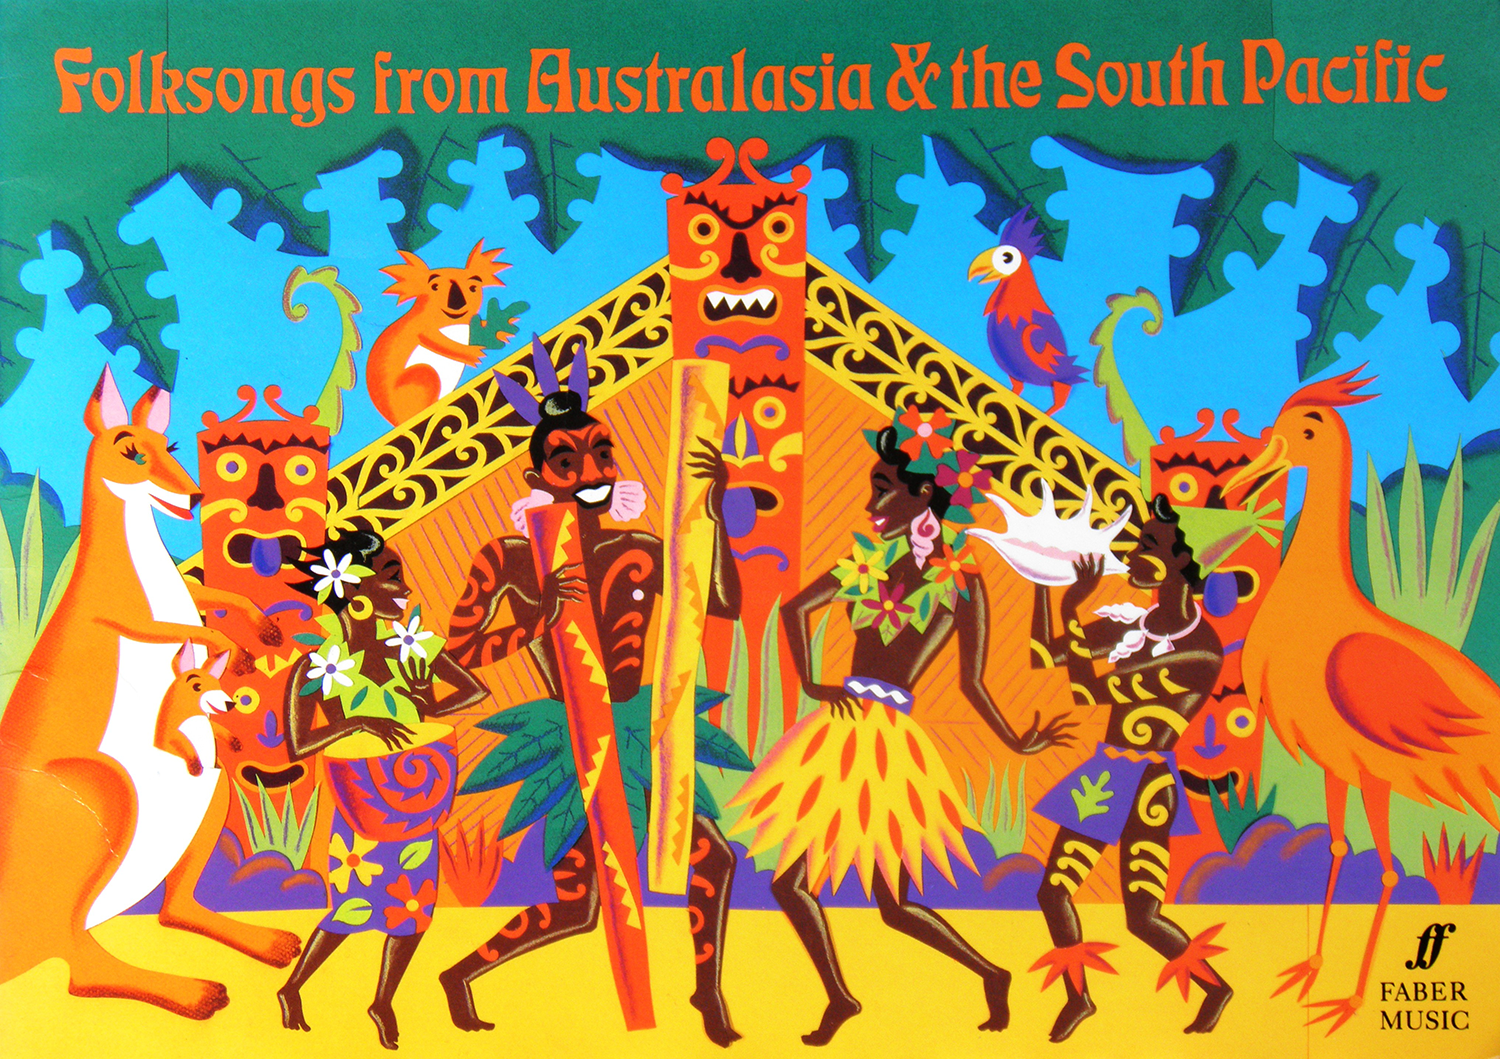 Folksongs from Aust and Sth Pacific